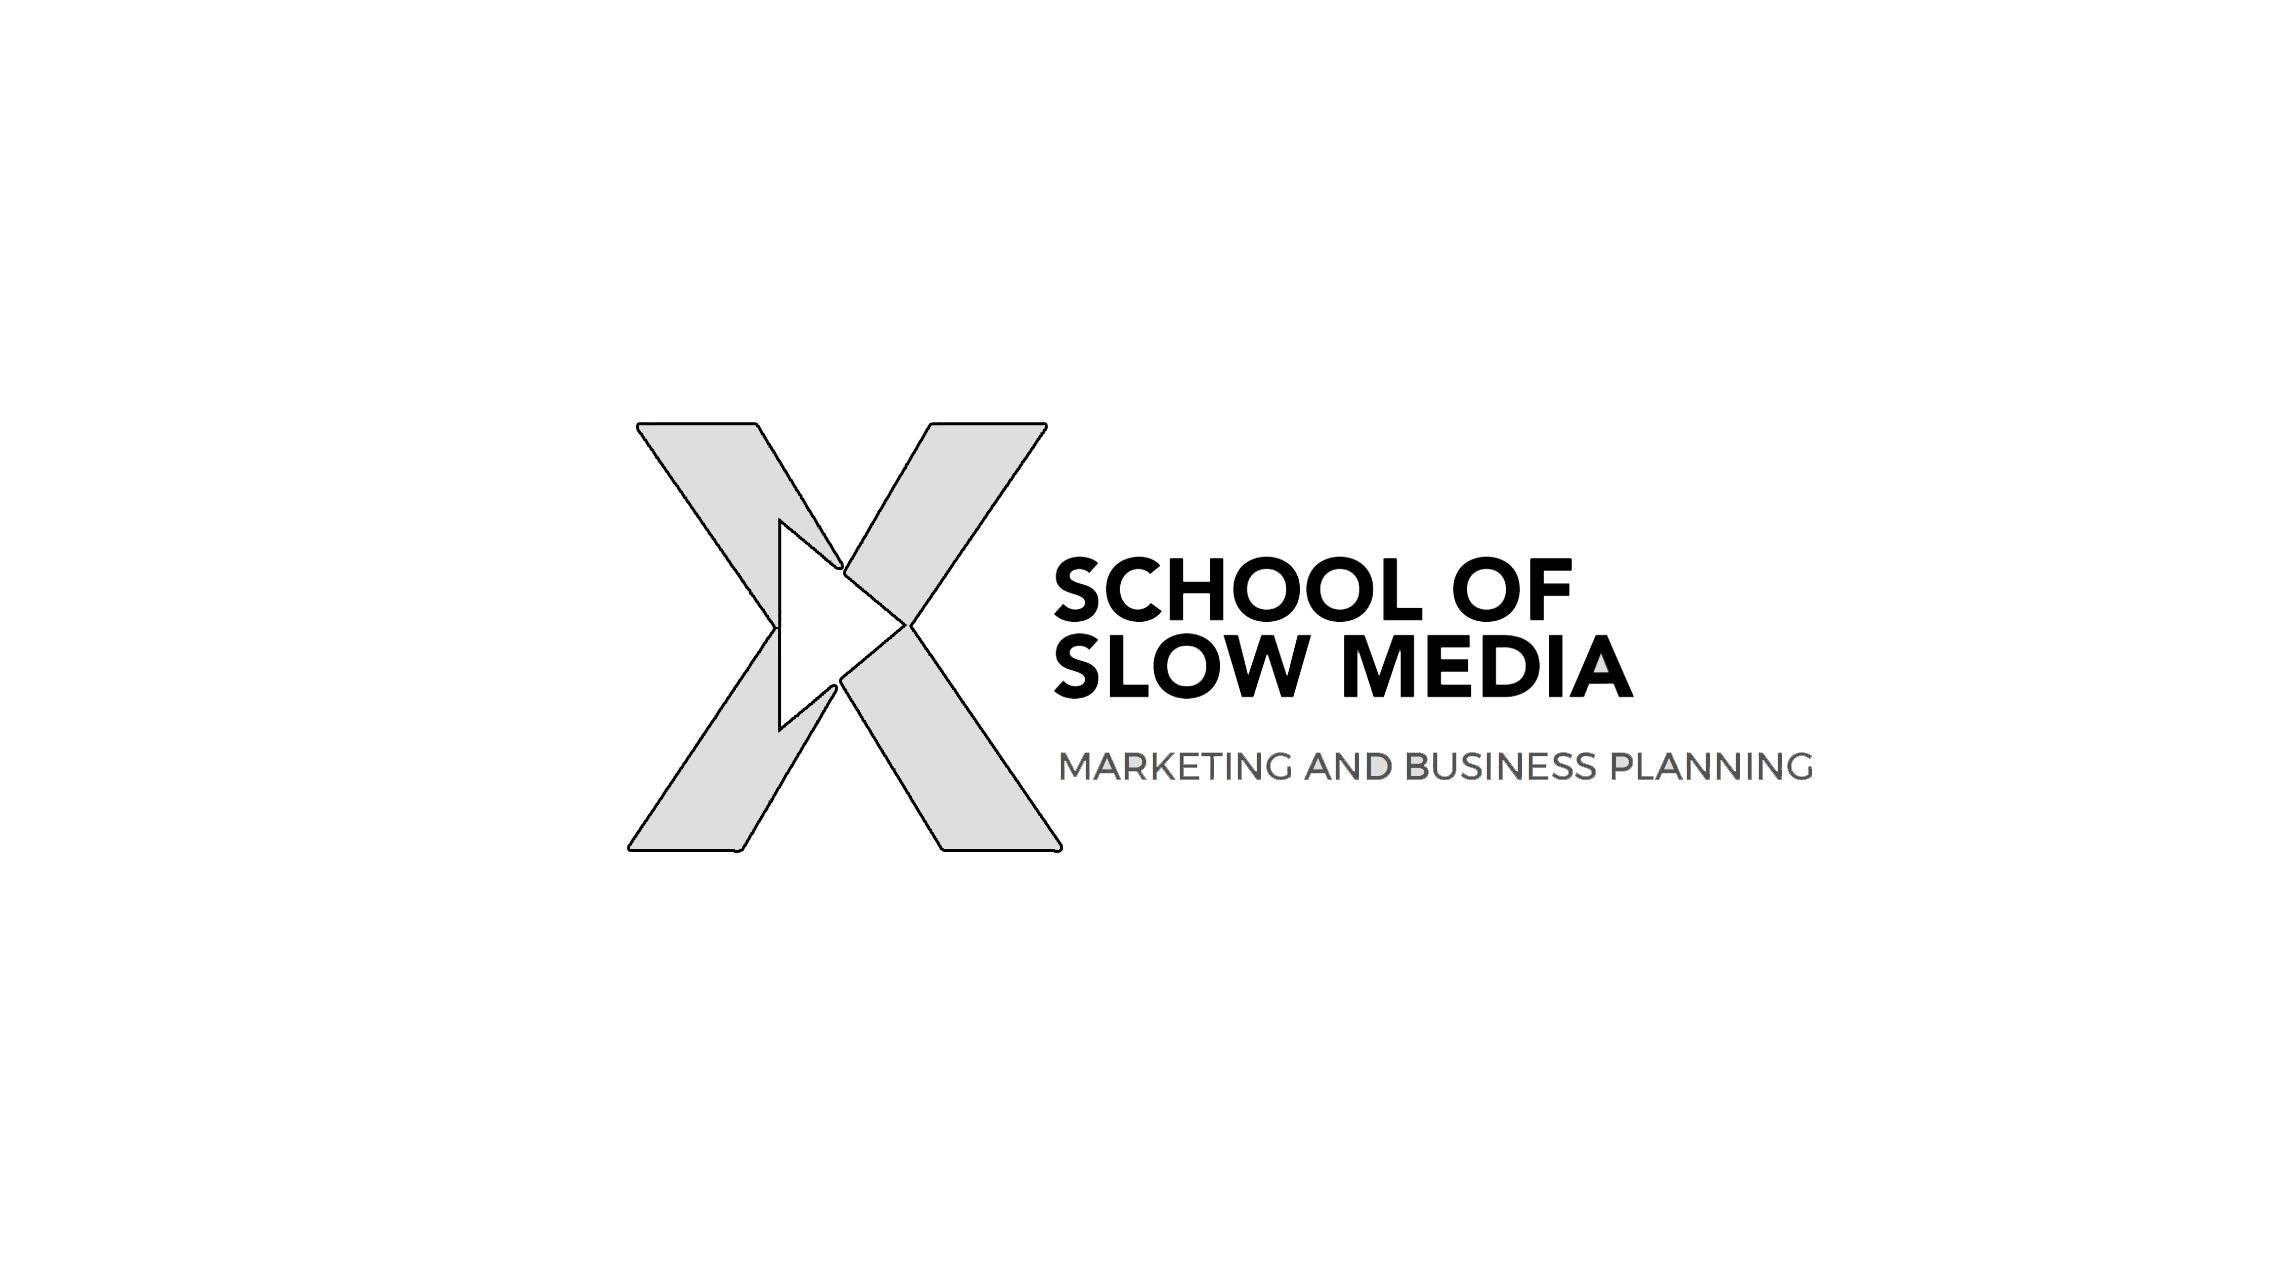 School of Slow Media - Business Strategy. More..